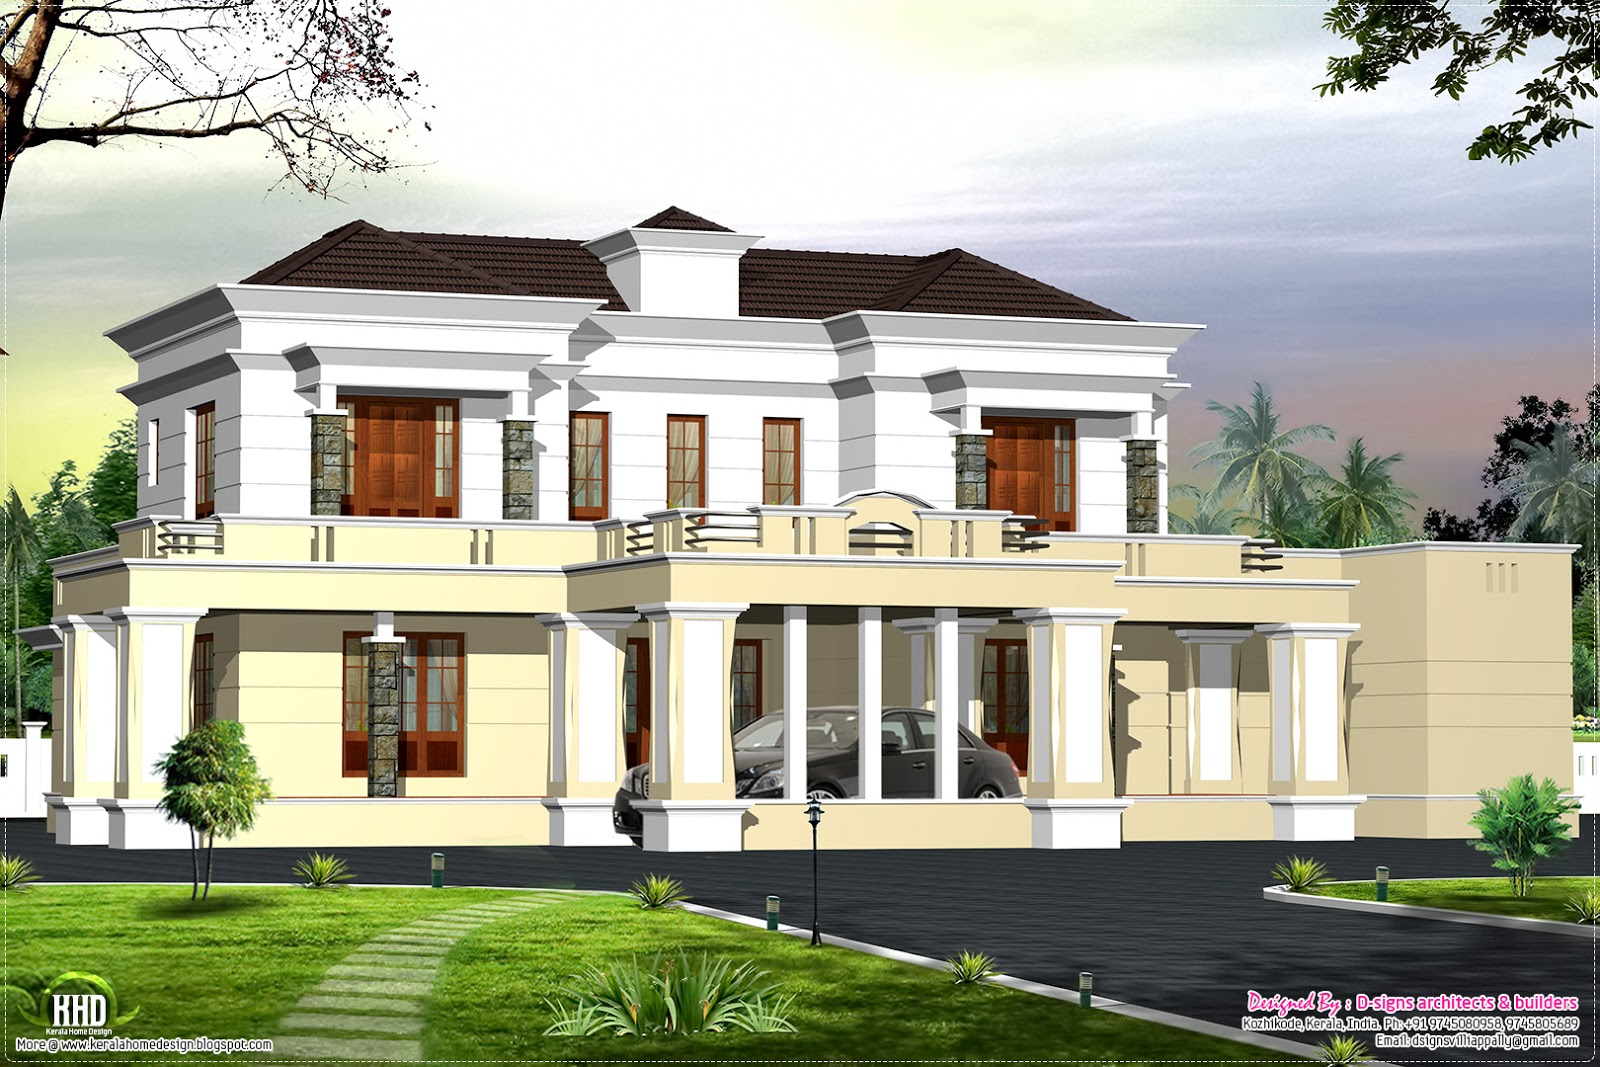 Victorian style luxury home design kerala home design for House plans with photos in kerala style